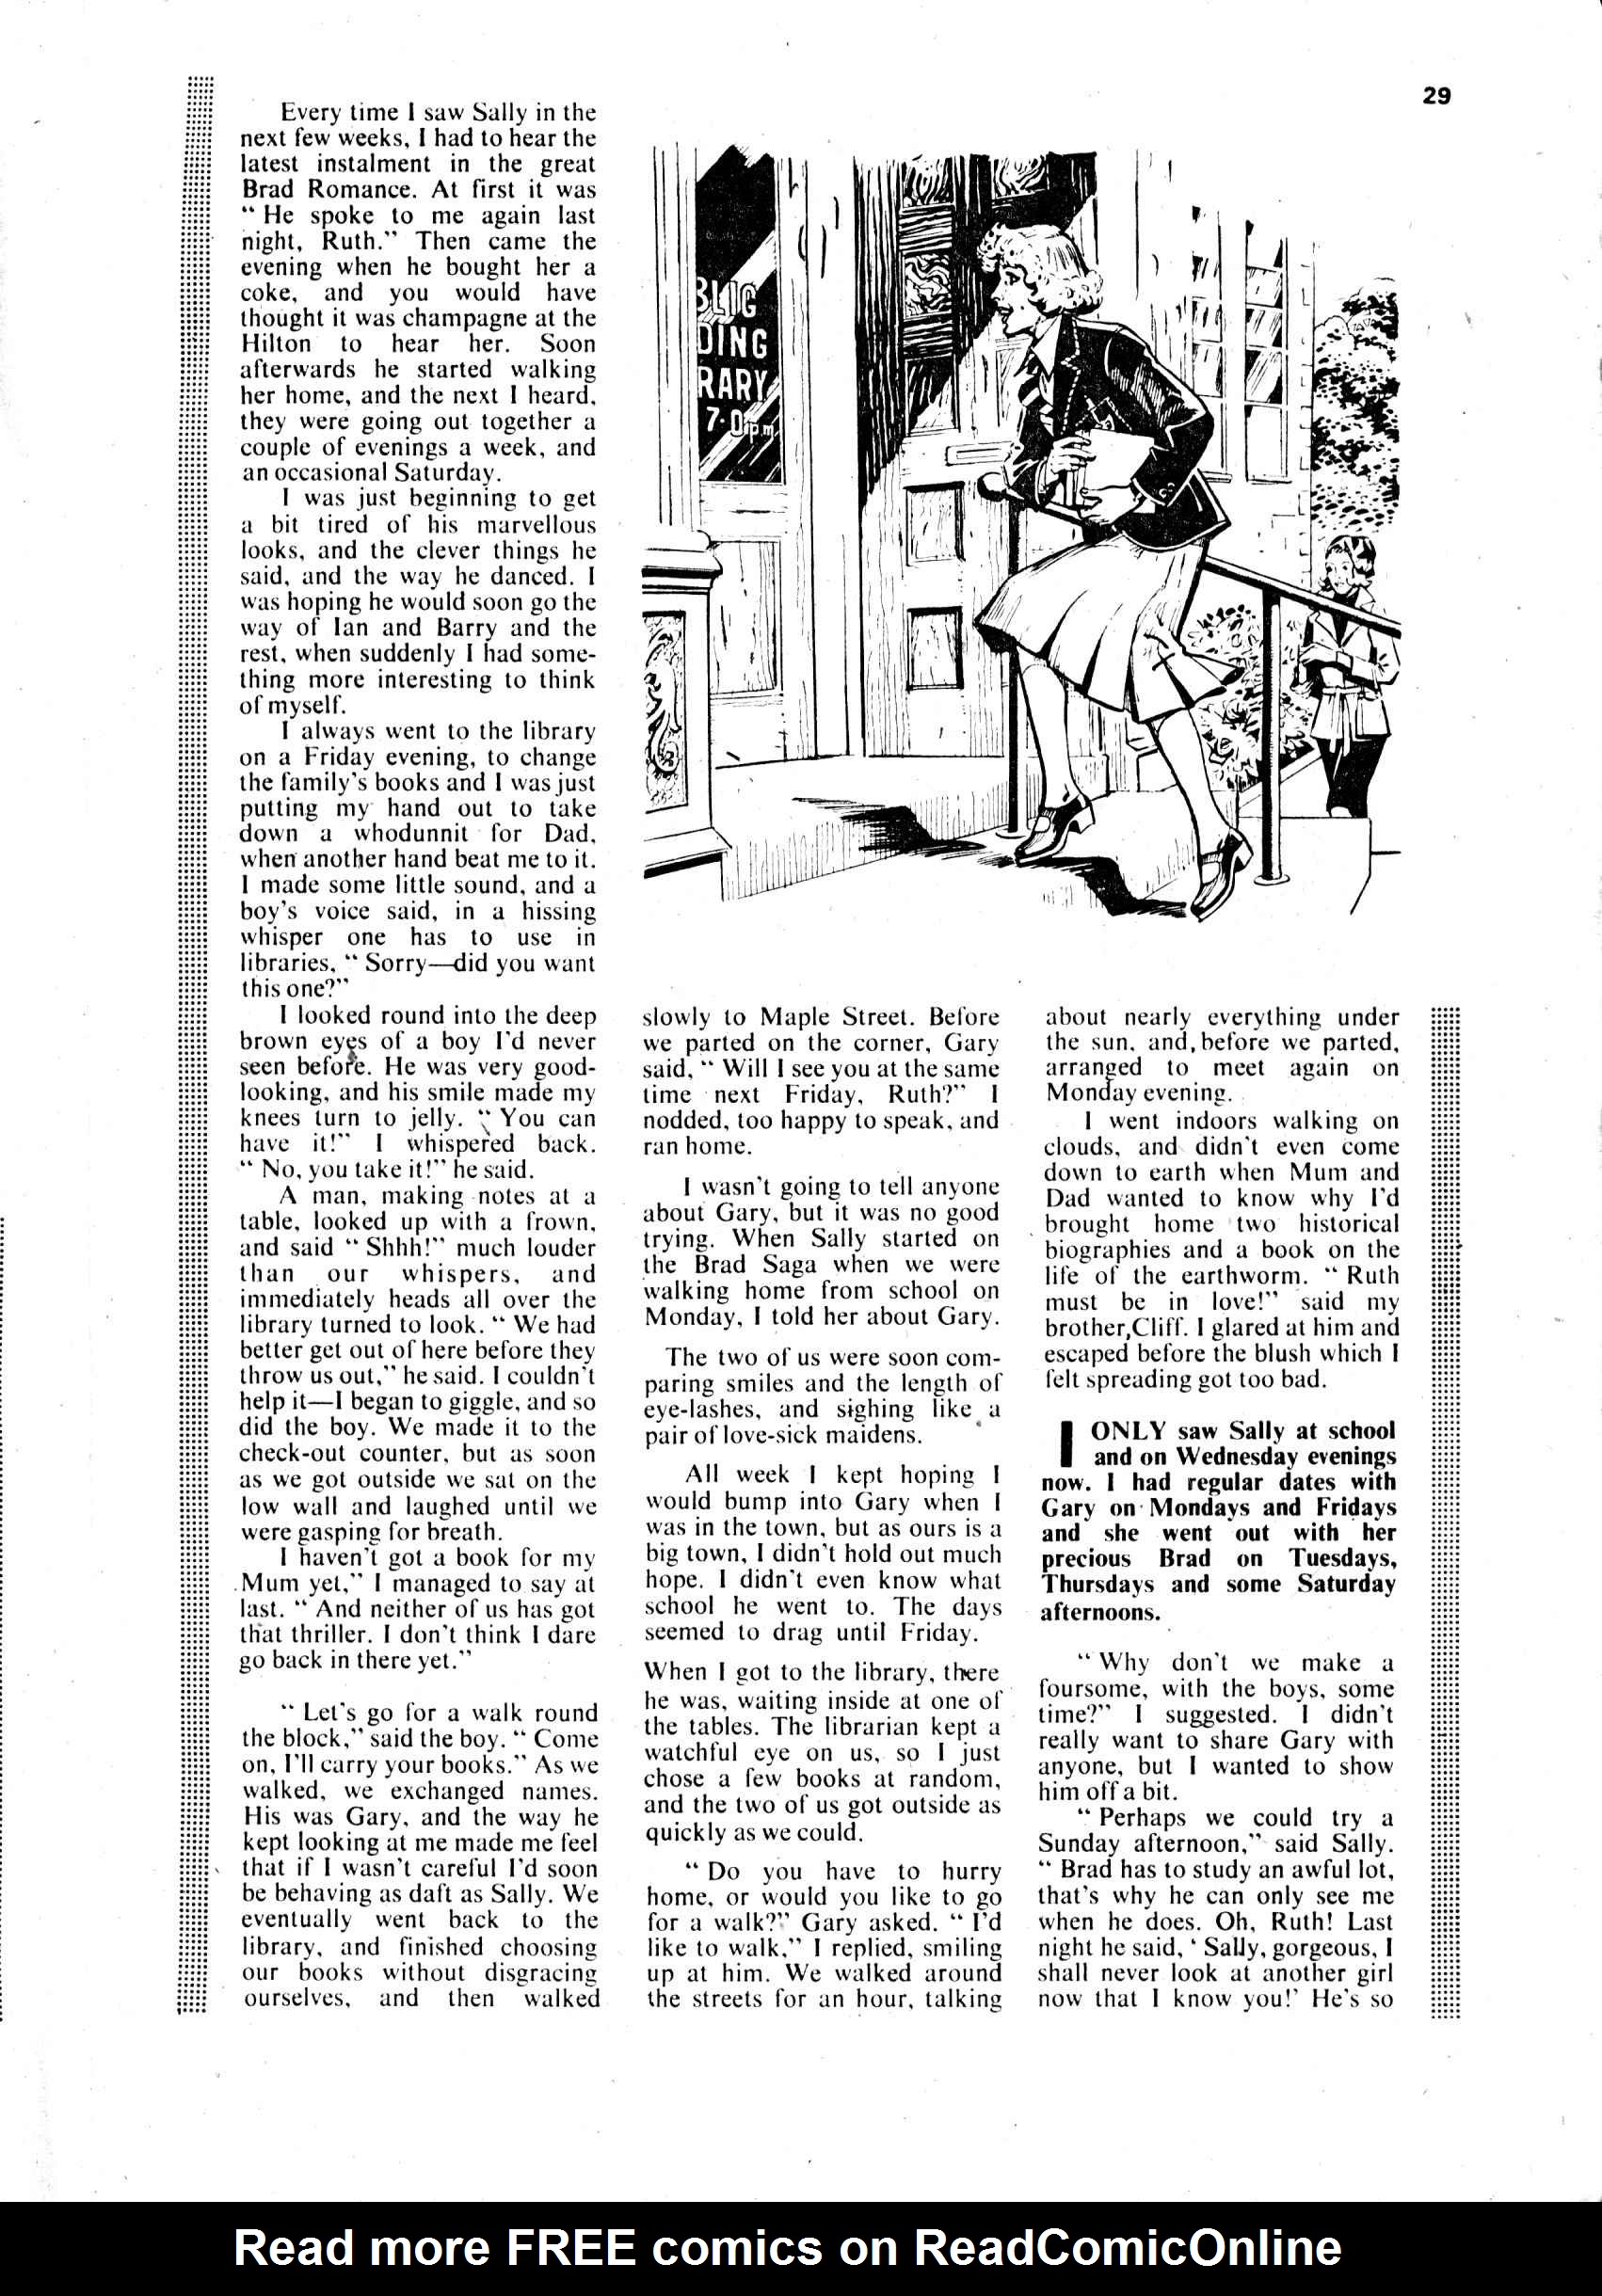 Read online Judy comic -  Issue #982 - 29